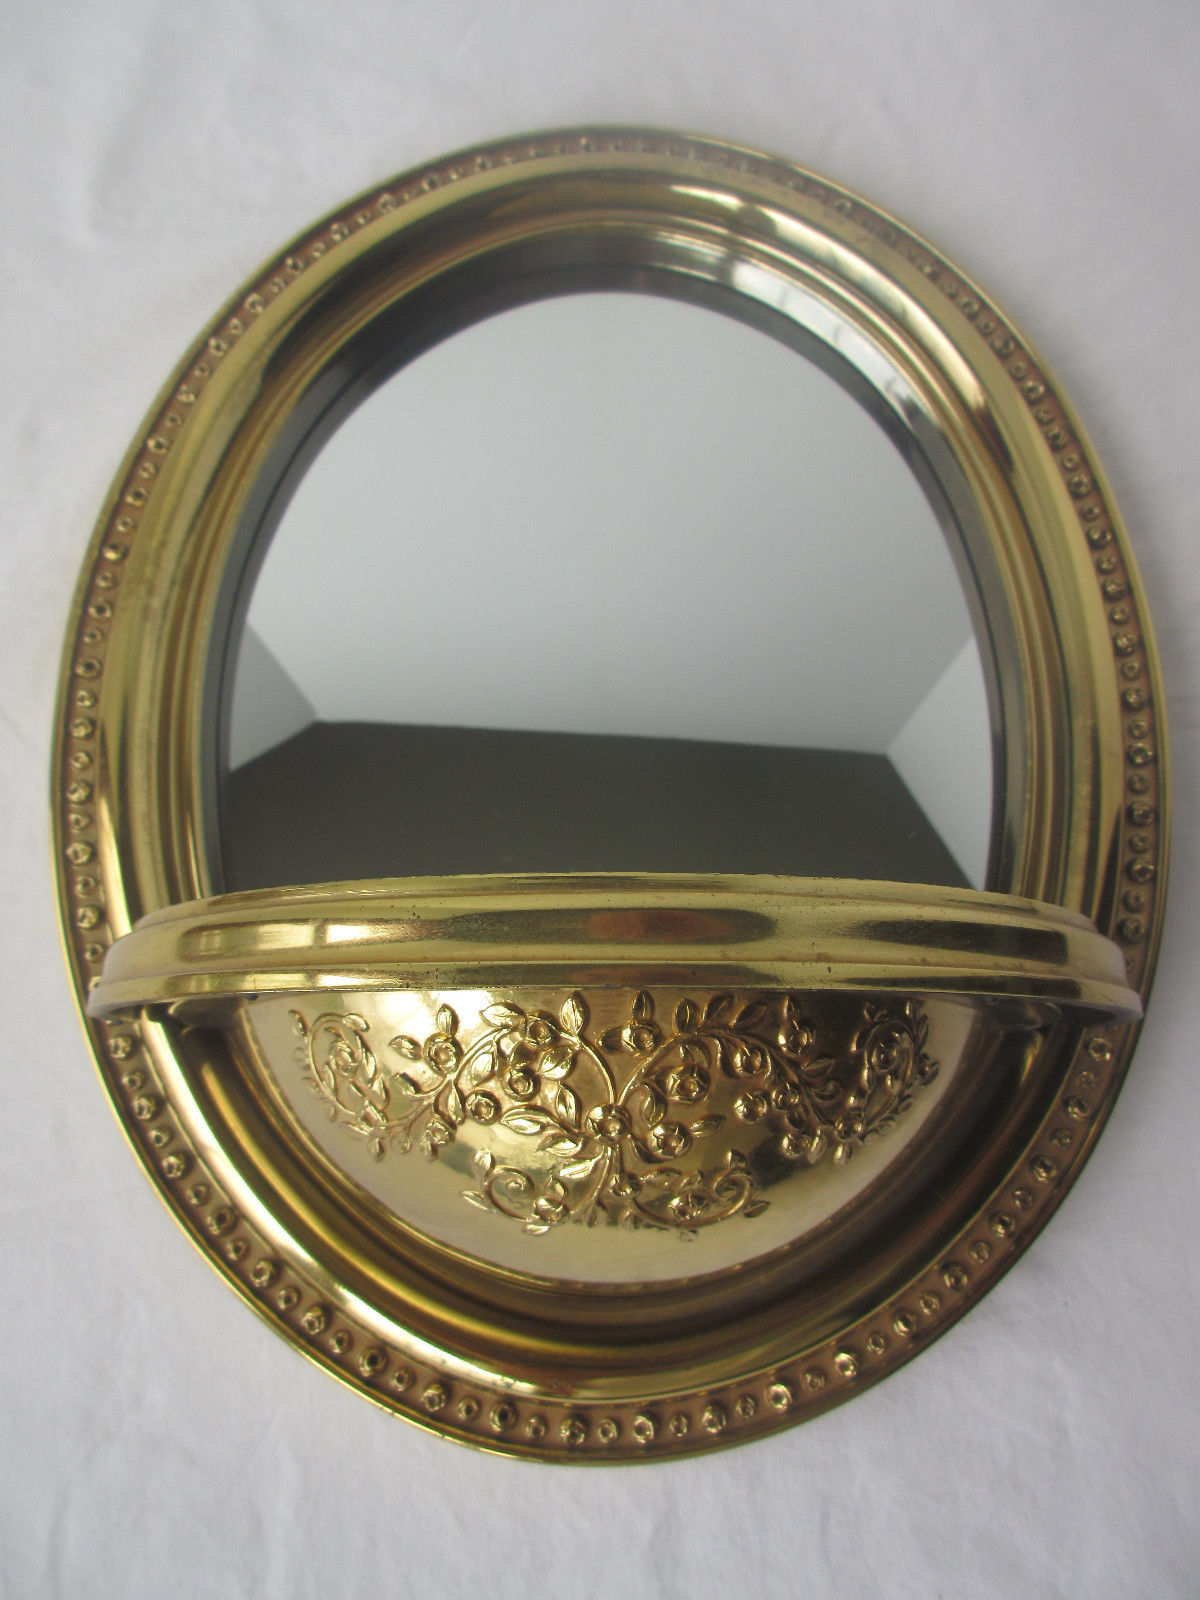 VINTAGE 1984 SYROCO HOMCO HOME INTERIOR GOLD ROSE WALL MIRROR WITH SHELF #2413